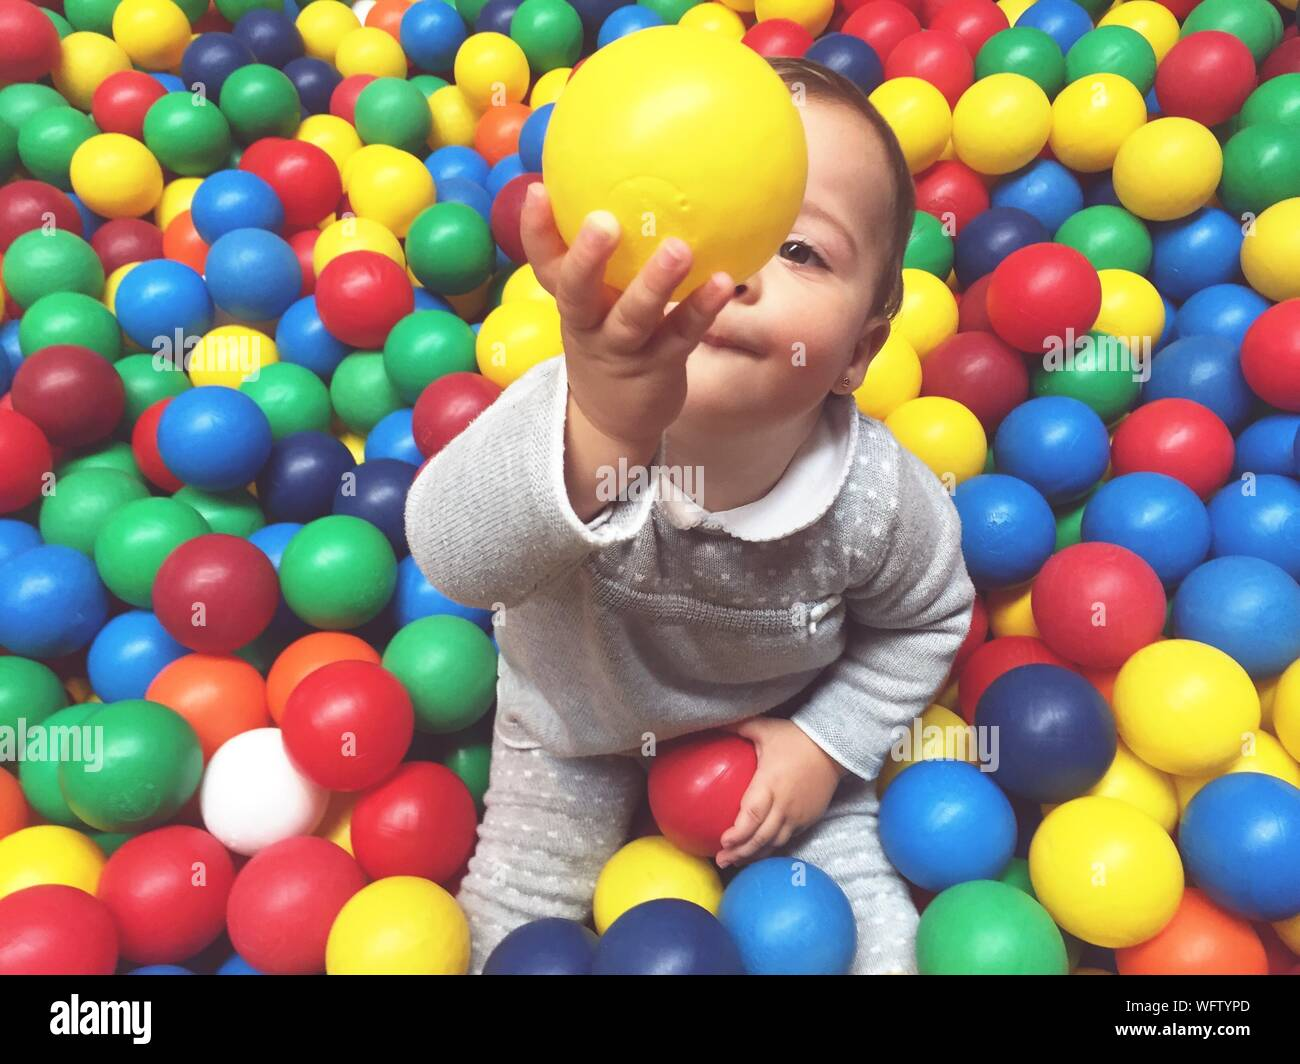 High Angle View Of Baby Boy Playing With Colorful Balls Stock Photo